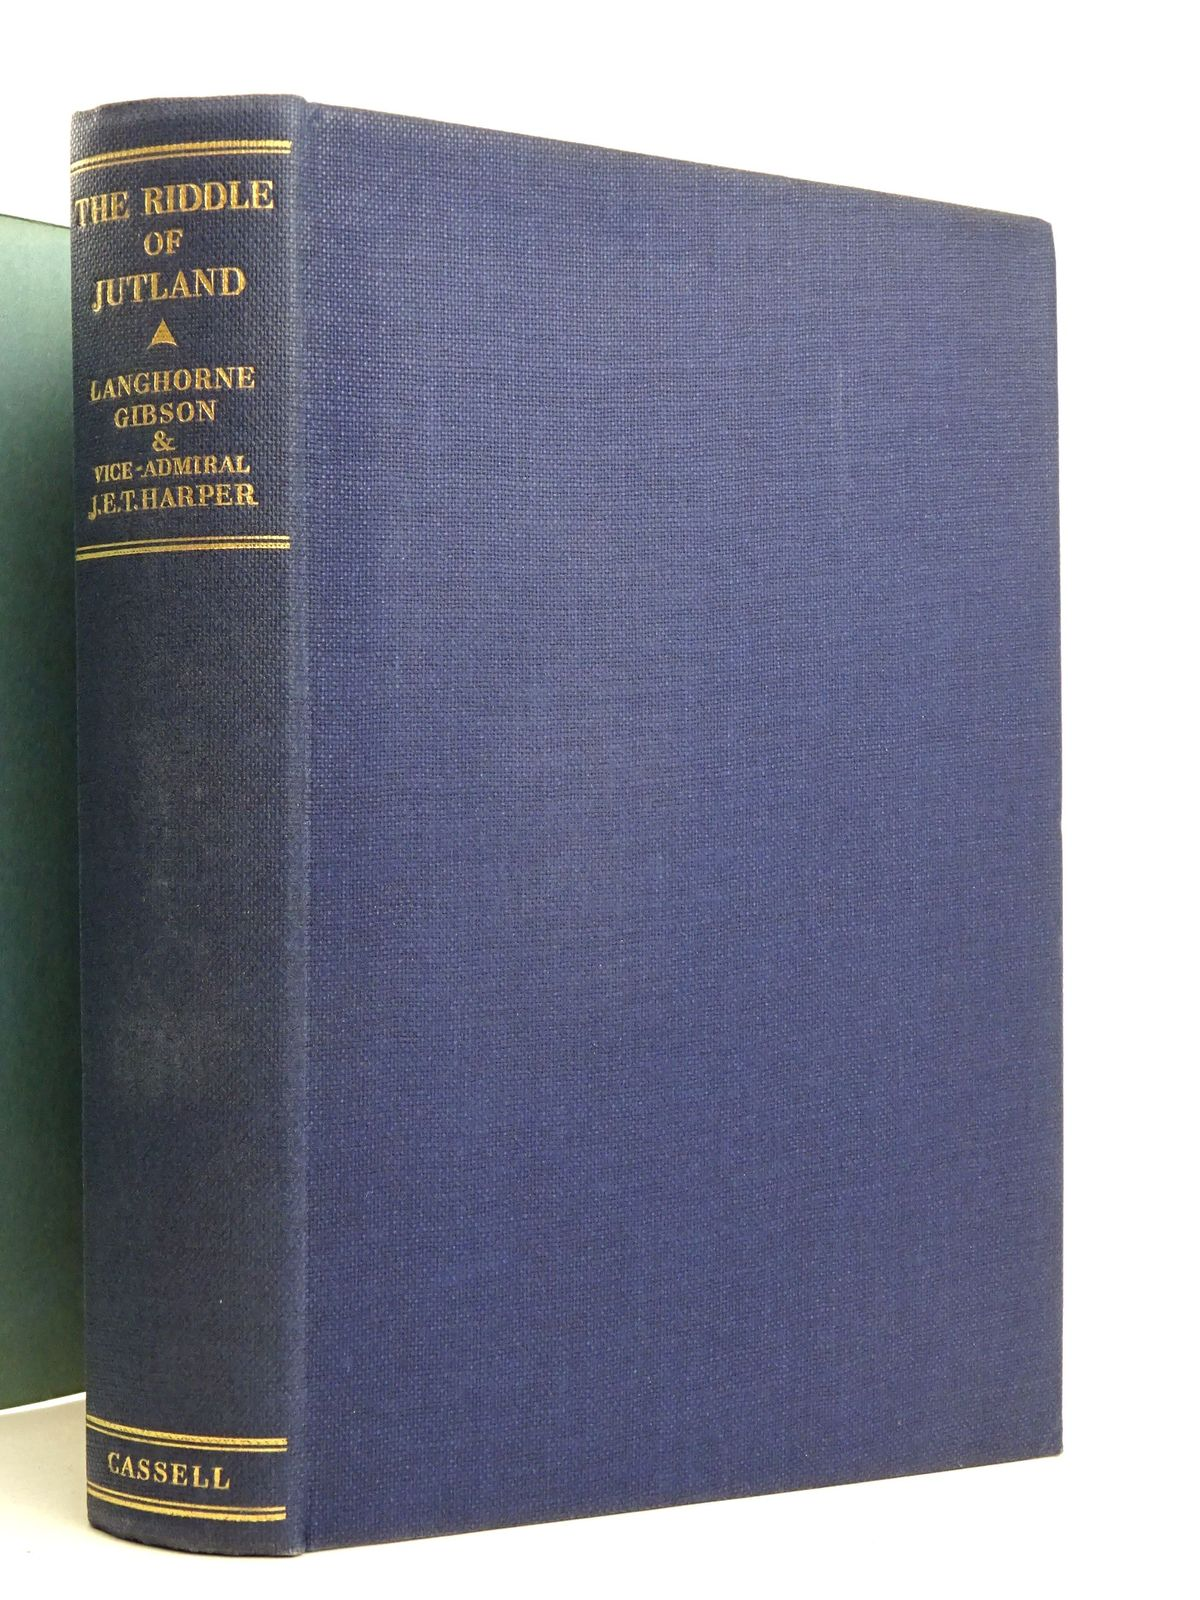 Photo of THE RIDDLE OF JUTLAND: AN AUTHENTIC HISTORY written by Gibson, Langhorne<br />Harper, J.E.T. published by Cassell &amp; Company Limited (STOCK CODE: 1818298)  for sale by Stella & Rose's Books